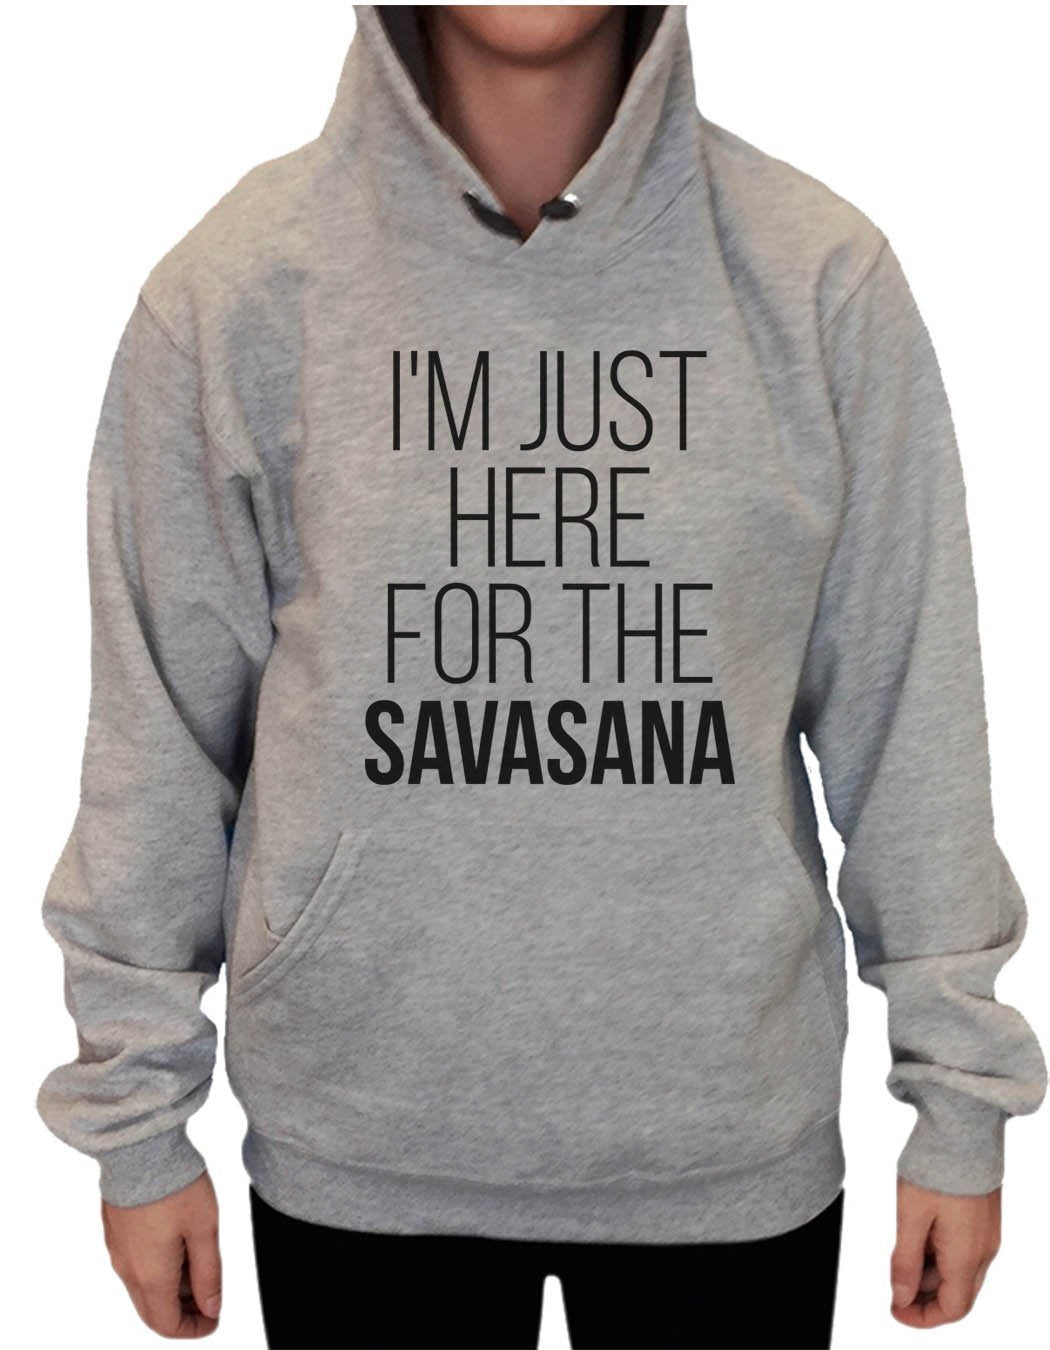 UNISEX HOODIE - I'm just here for the Savasana - FUNNY MENS AND WOMENS HOODED SWEATSHIRTS - 2119 Funny Shirt